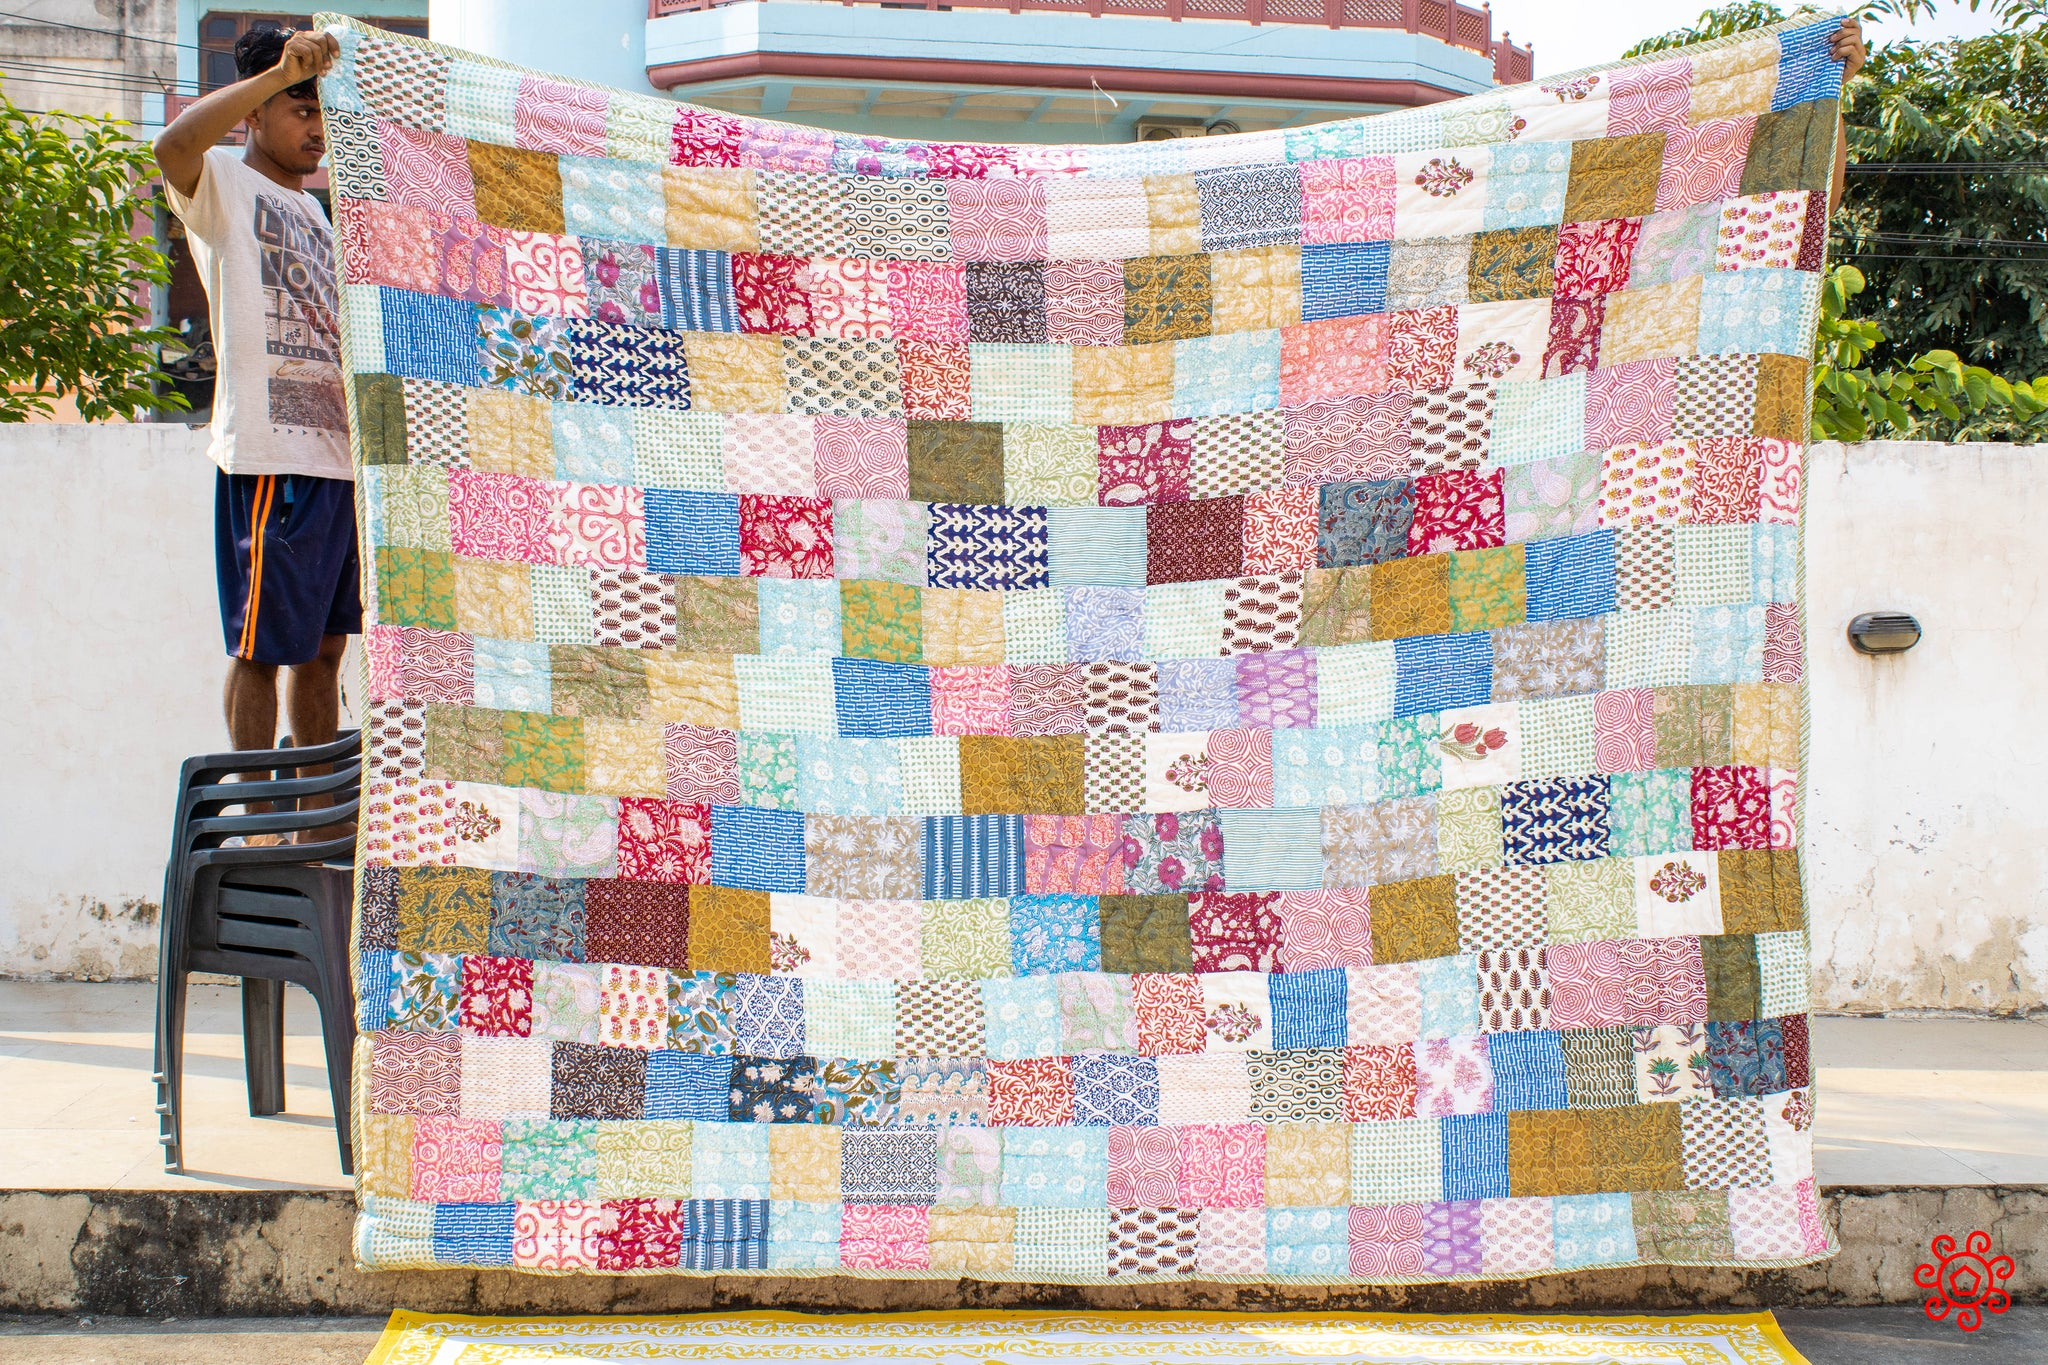 All New Roysha 2020 Quilt Collection - 100% Handmade Queen Patchwork Quilt QPW-221